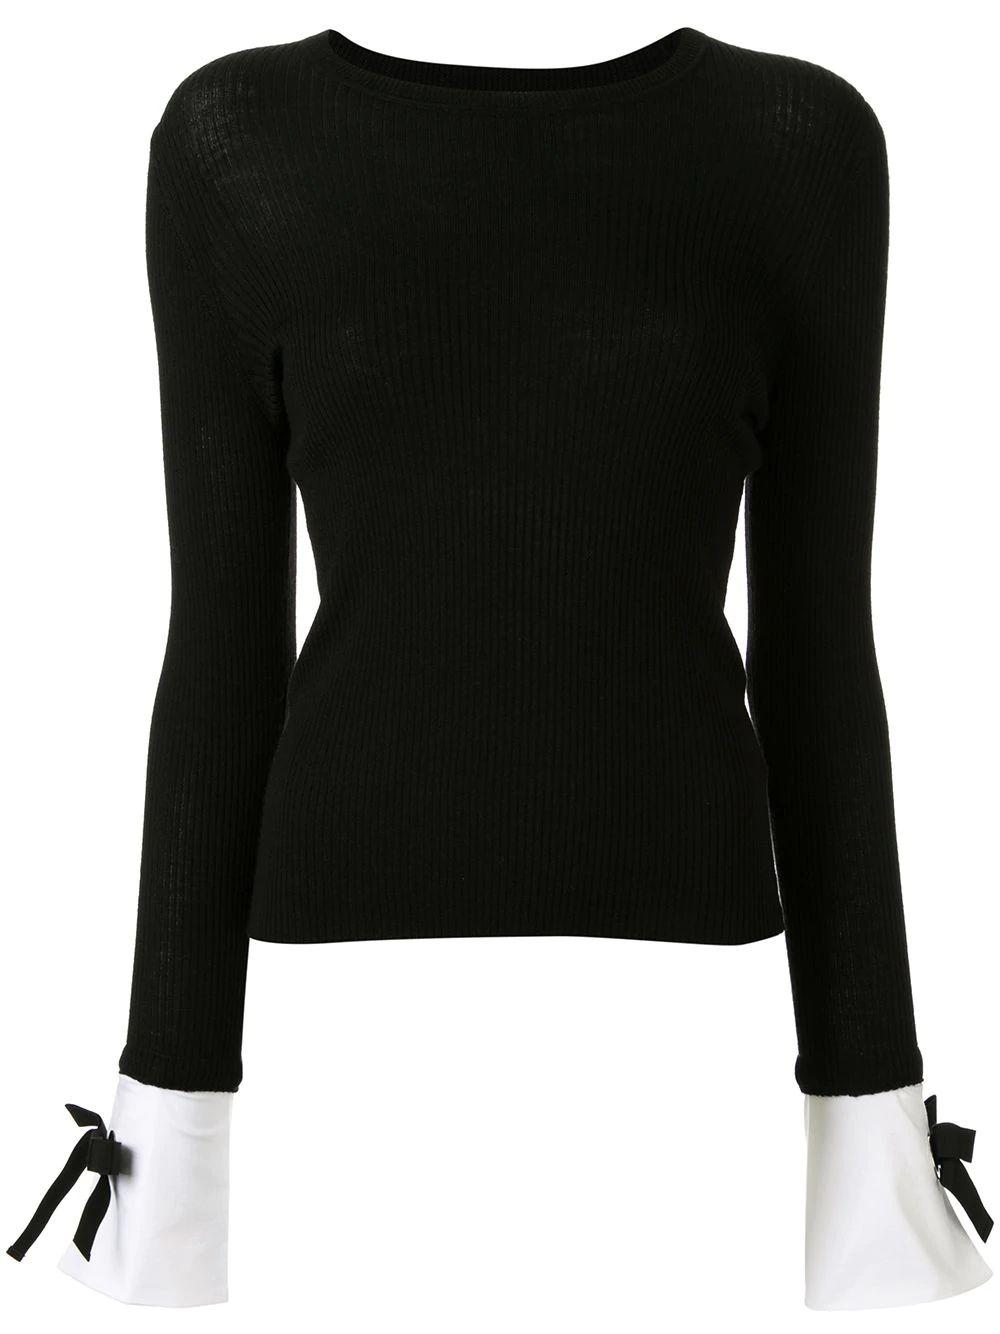 Long Sleeve Pullover Top With Tied Cuffs